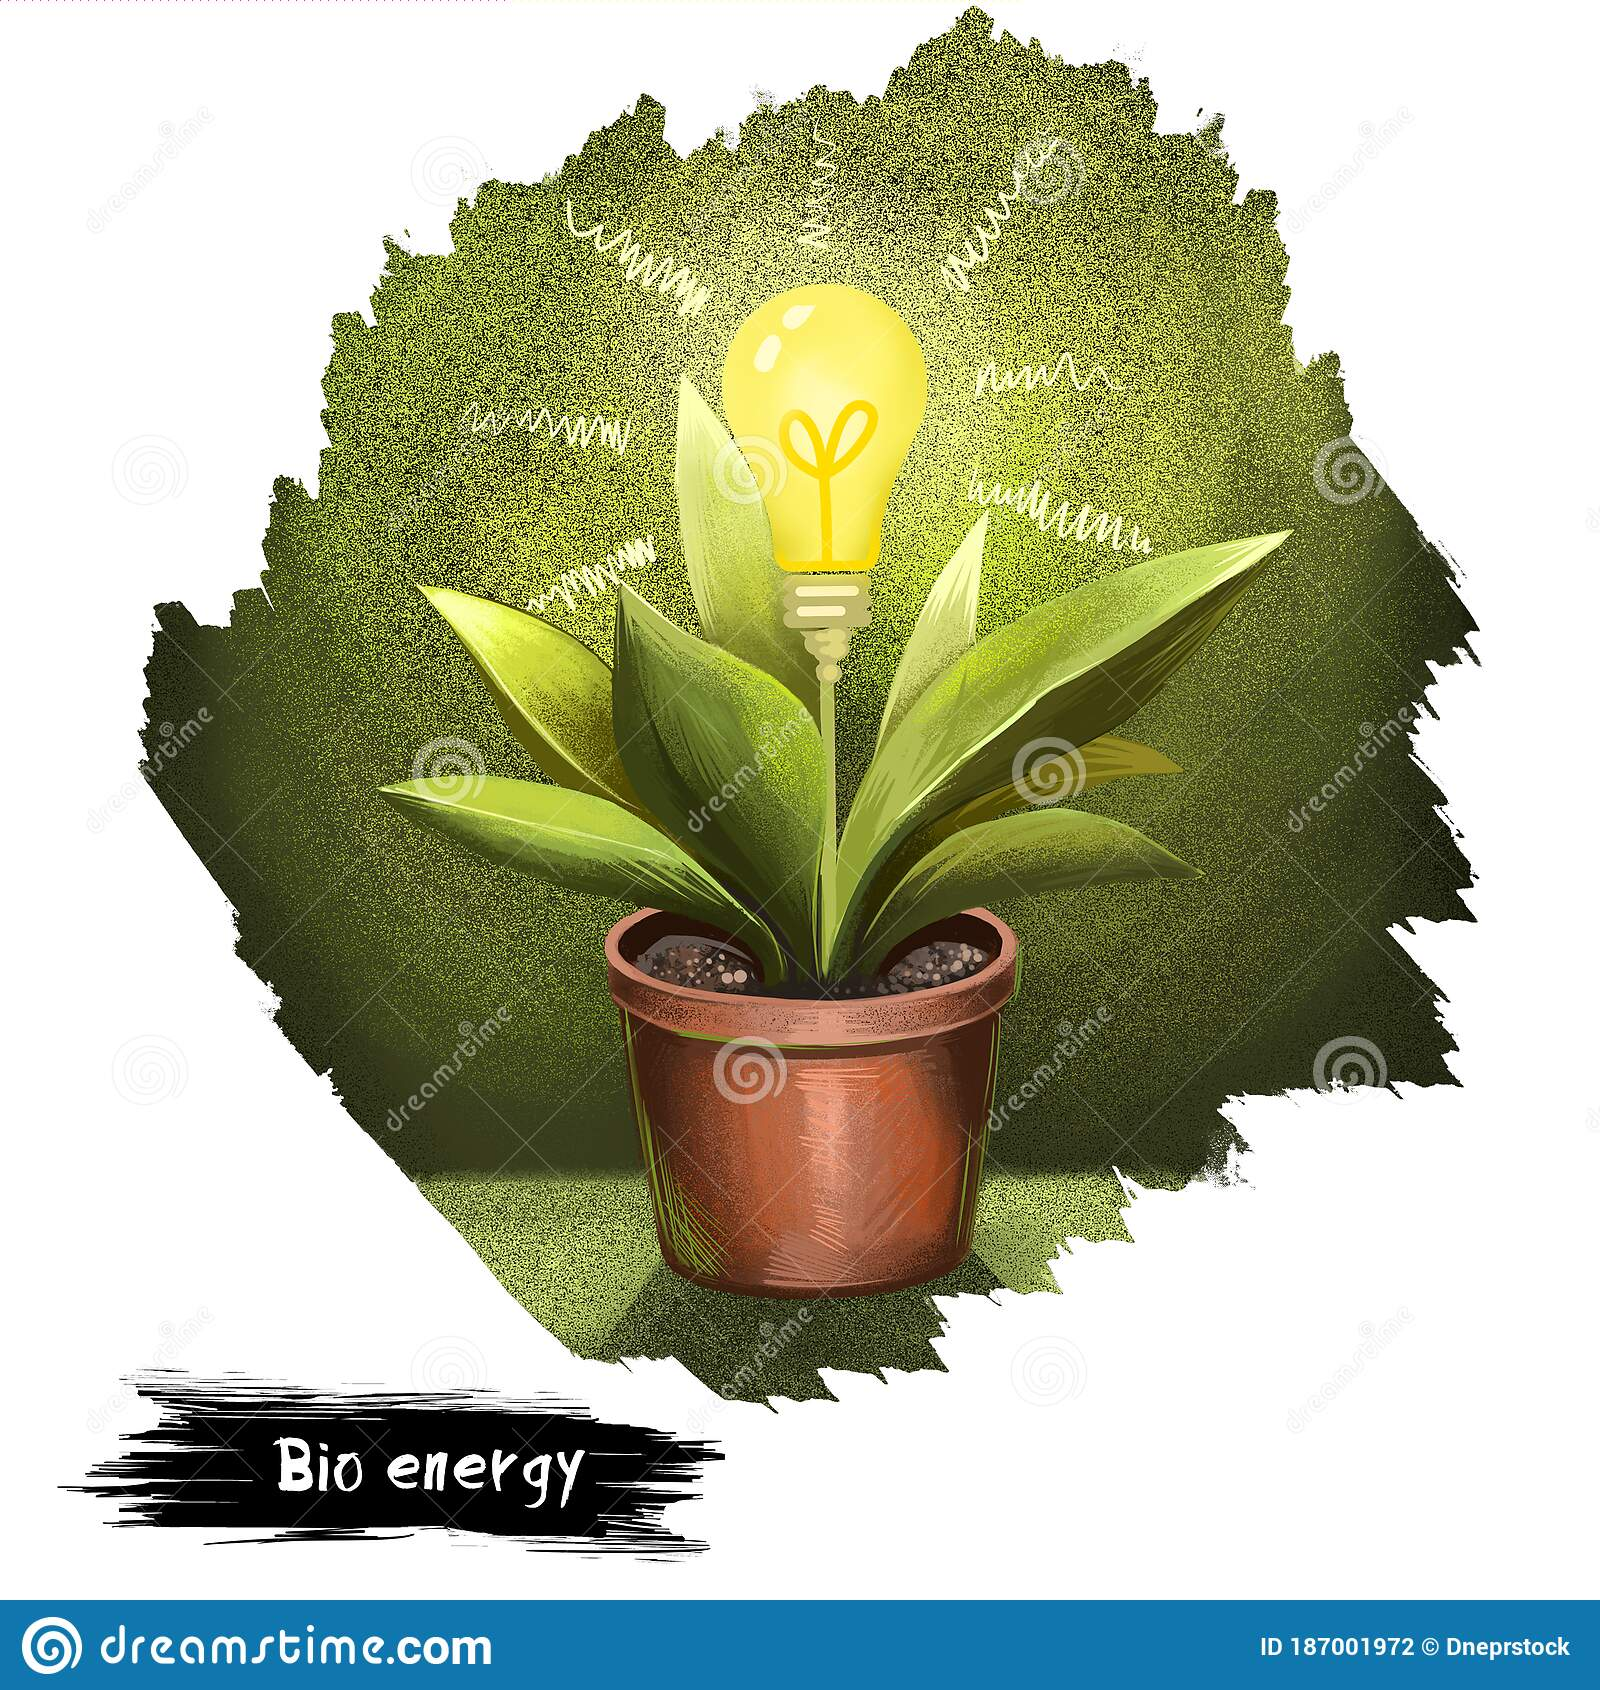 Bio Energy Digital Art Illustration Isolated On White Green Plant With Pot And Electric Bulb Except Of Flower Poster In Stock Illustration Illustration Of Modern Electric 187001972